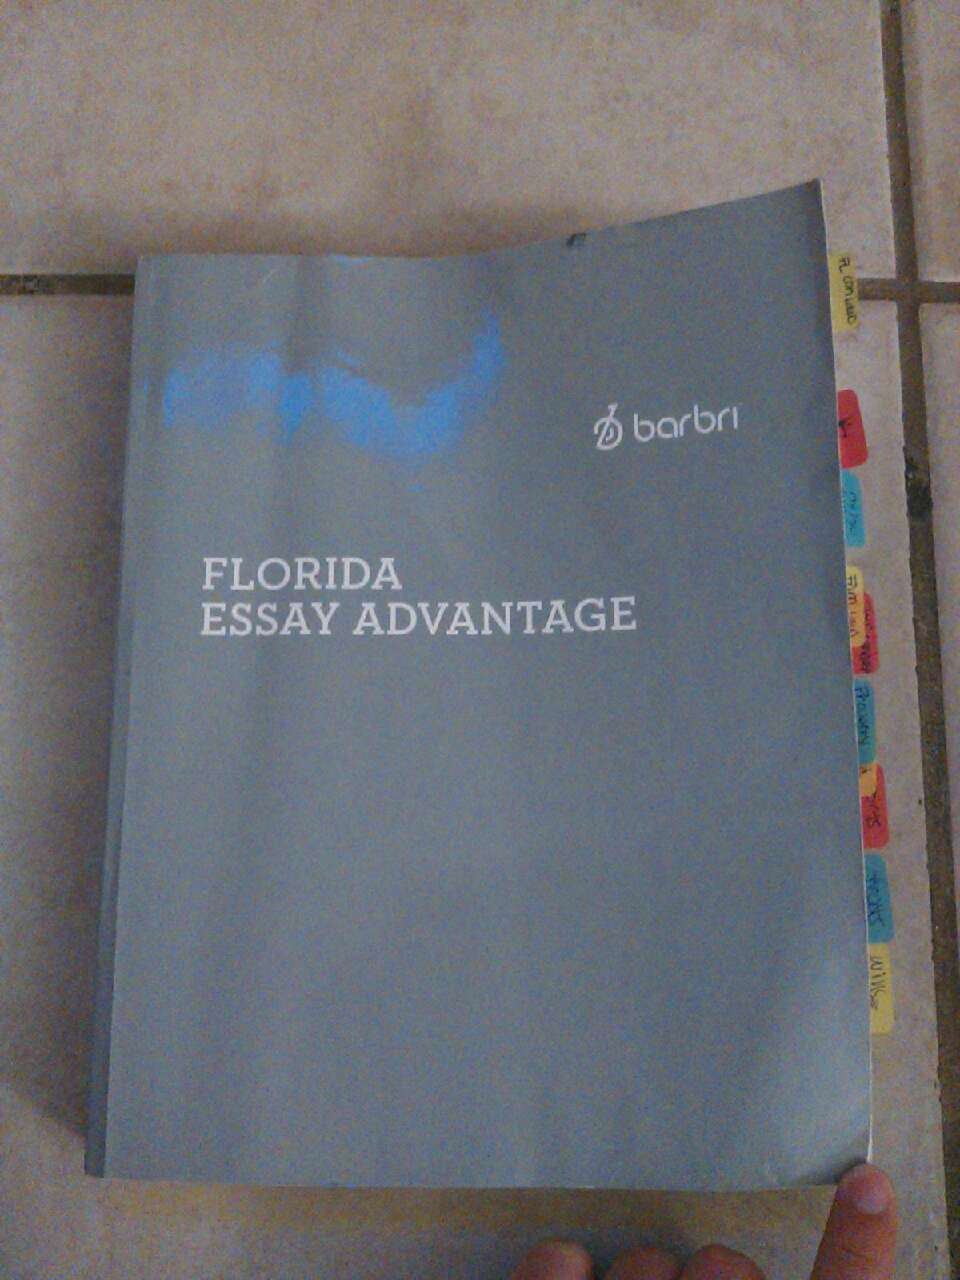 florida essay advantage book 91 121 113 106 florida essay advantage book